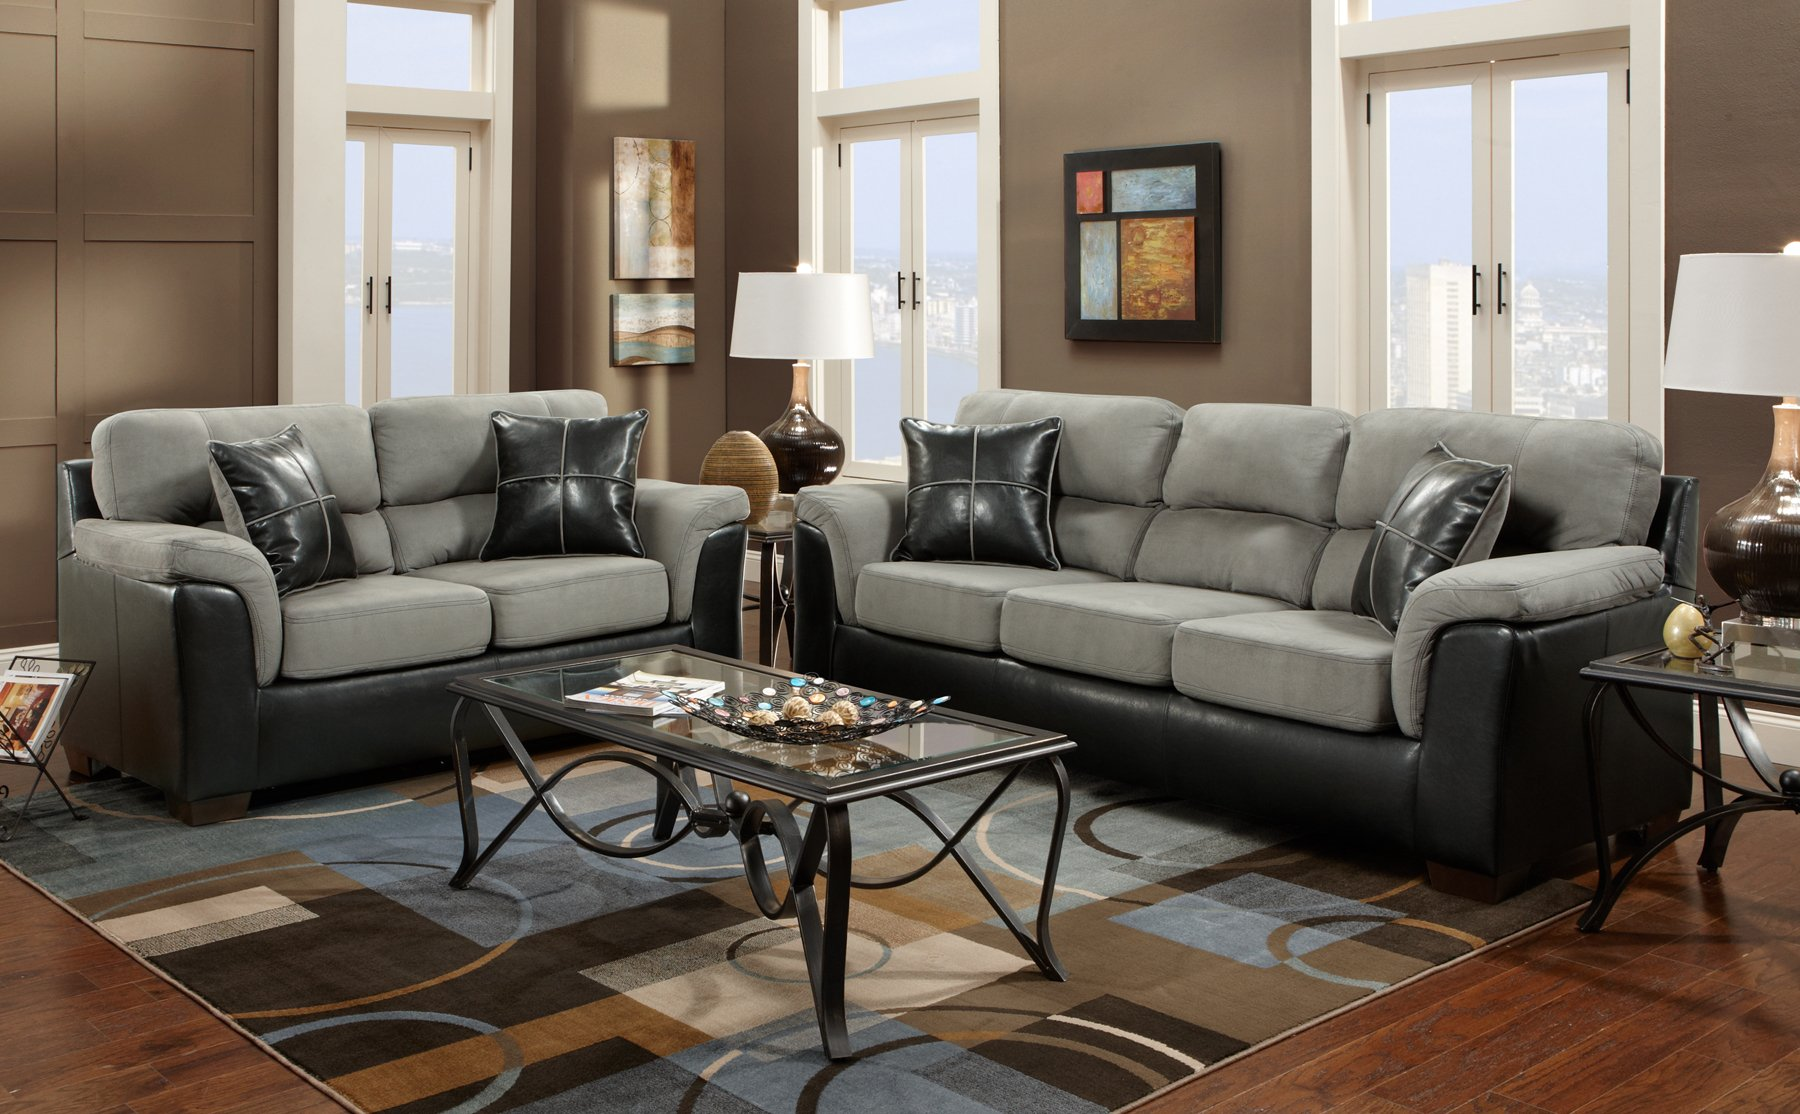 Roundhill Furniture Laredo 2 Toned Sofa And Loveseat